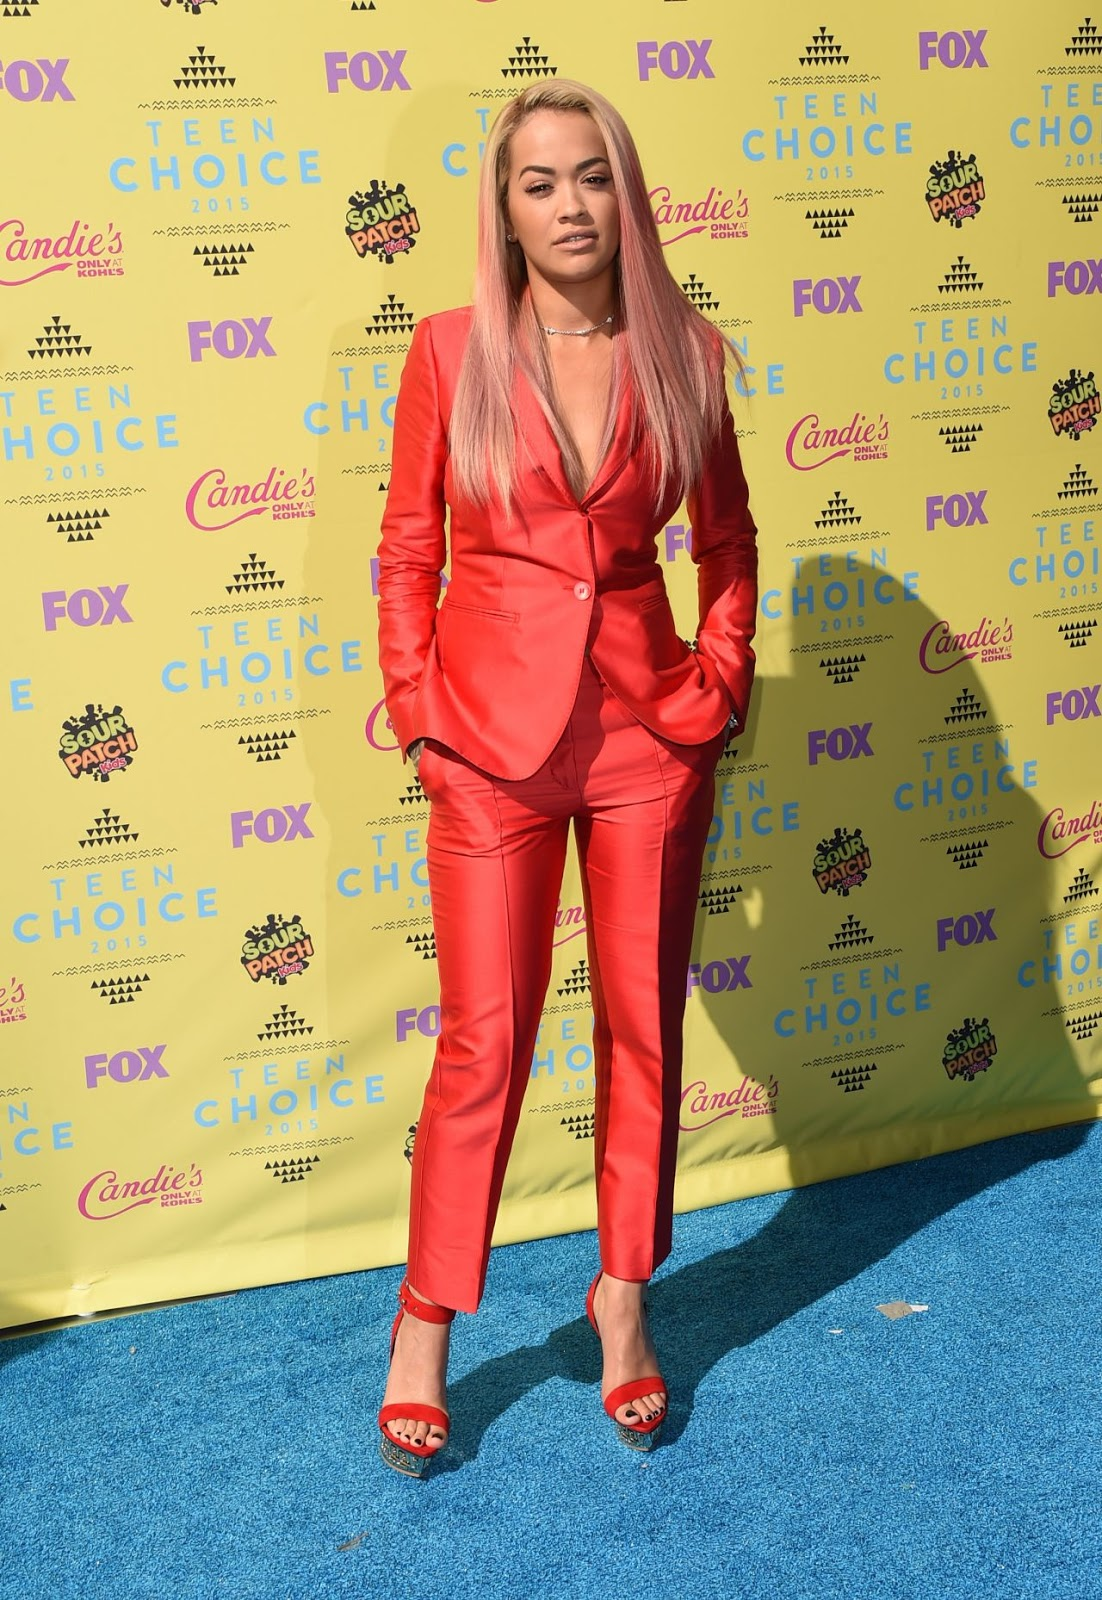 Rita Ora looks red hot for Teen Choice Awards 2015